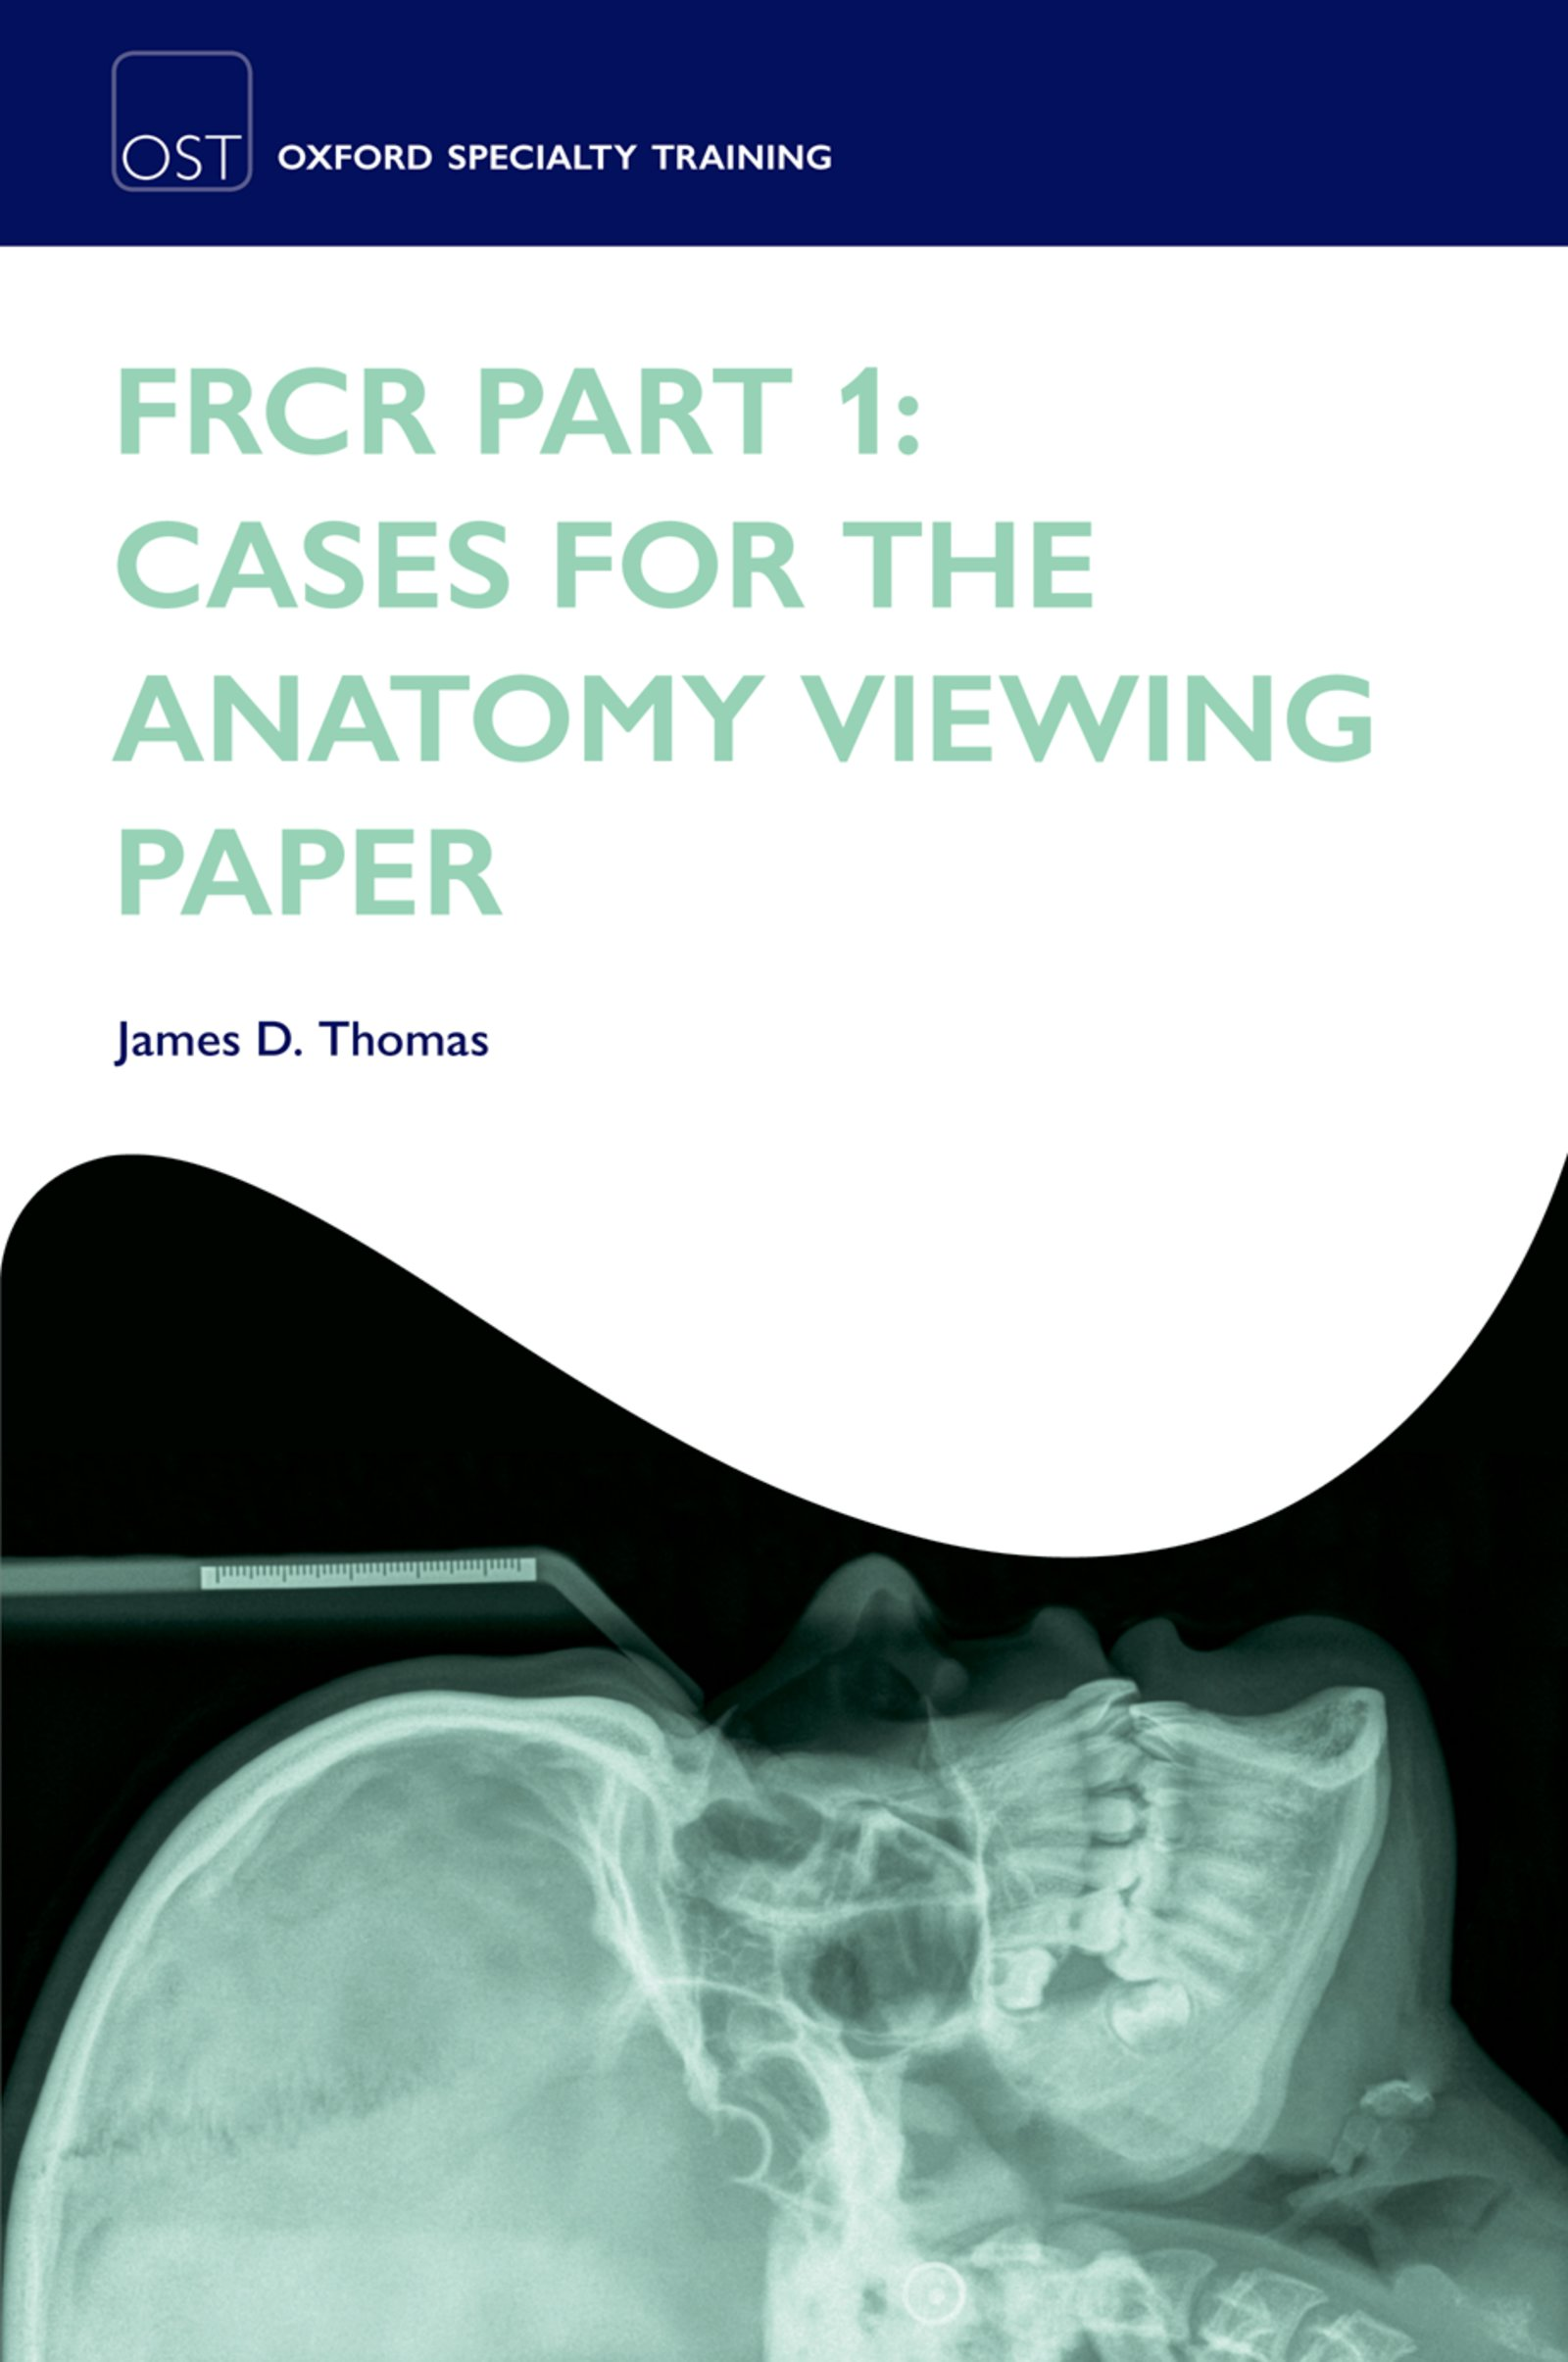 FRCR Part 1: Cases for the anatomy viewing paper